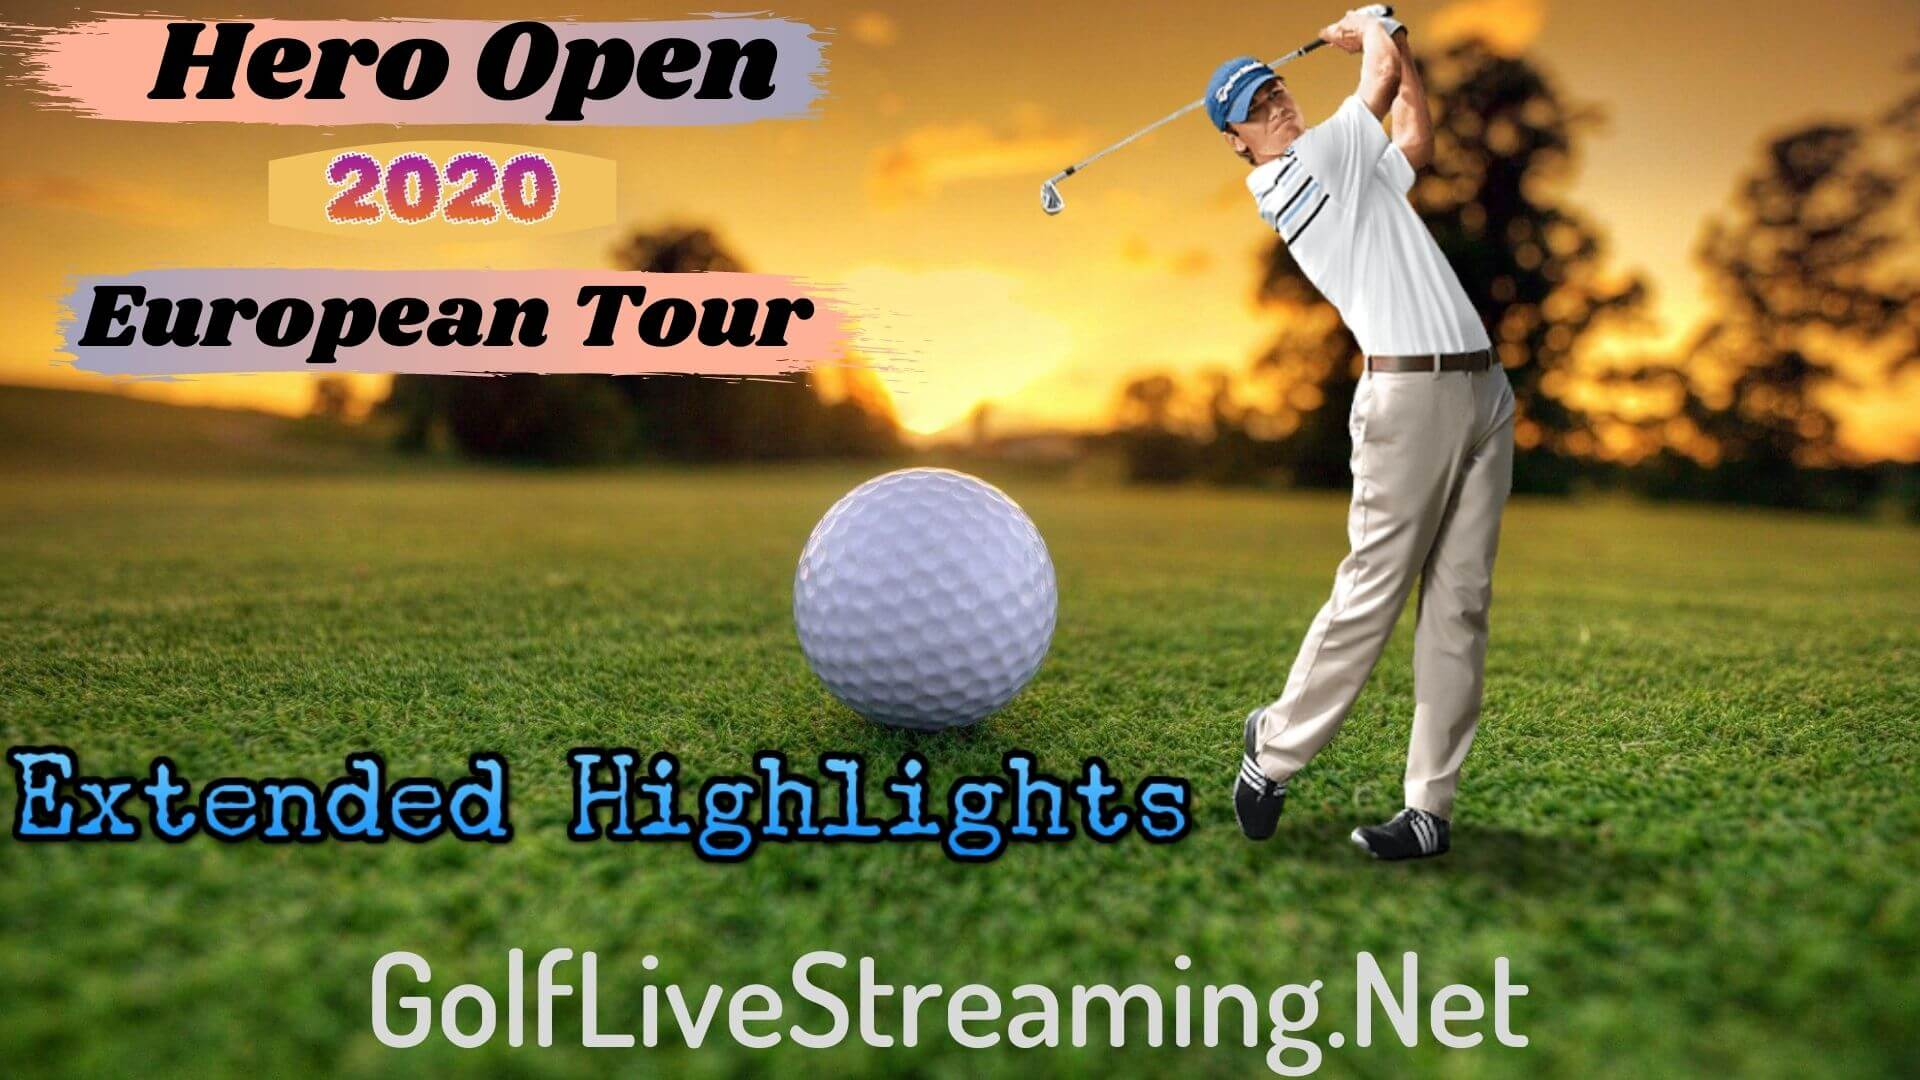 Hero Open Extended Highlights 2020 European Tour